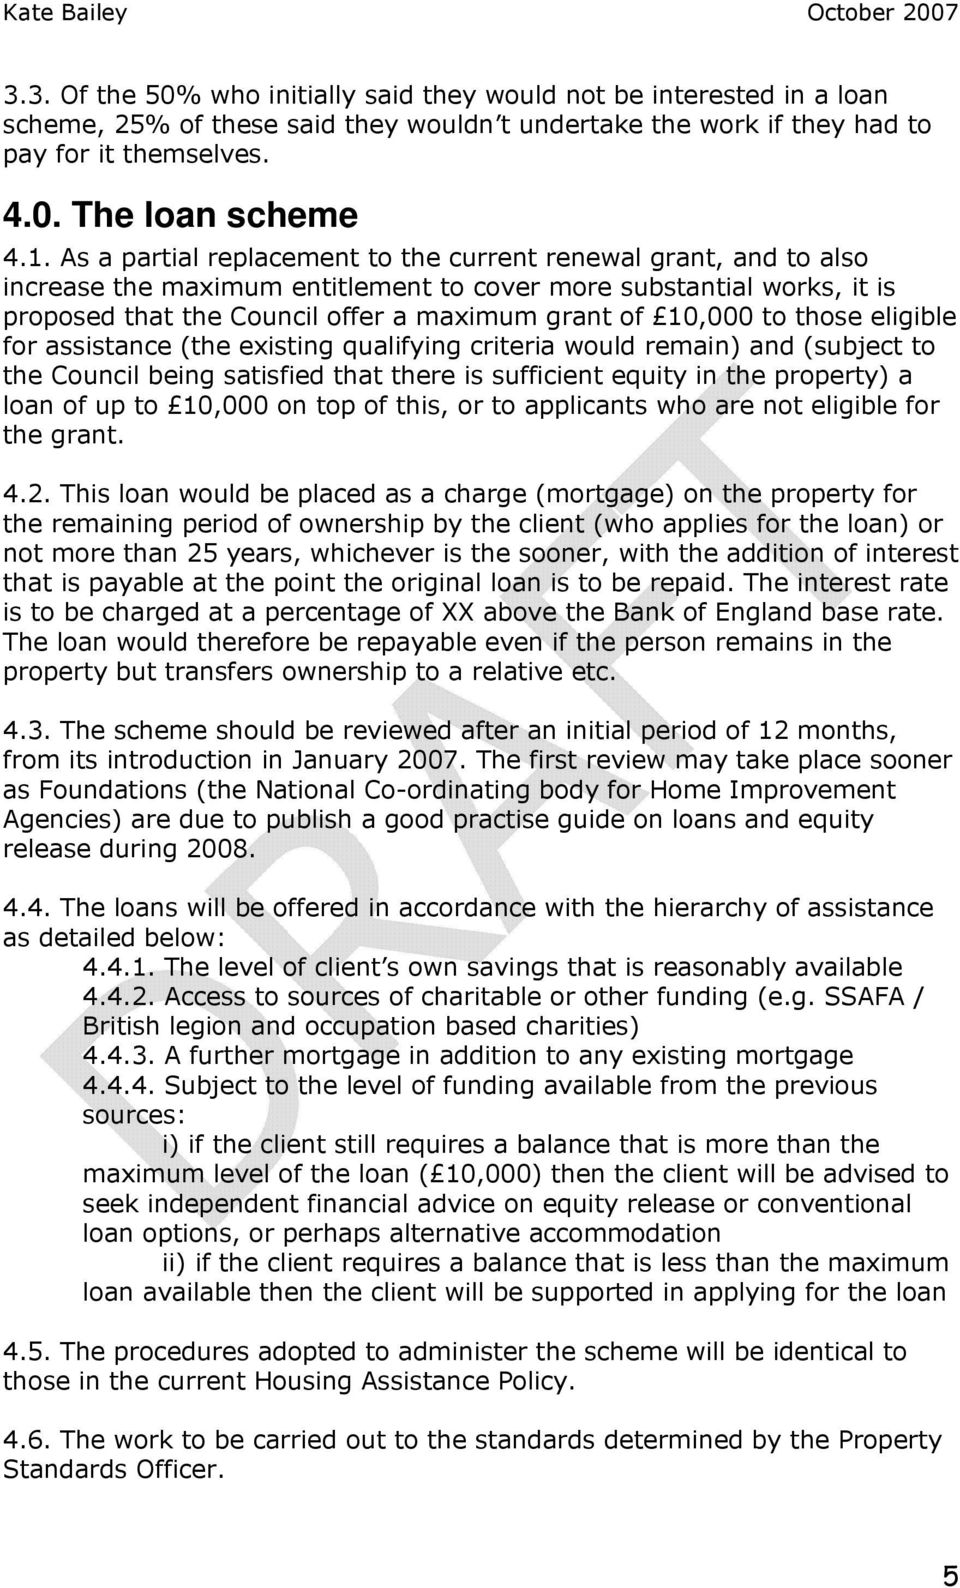 those eligible for assistance (the existing qualifying criteria would remain) and (subject to the Council being satisfied that there is sufficient equity in the property) a loan of up to 10,000 on